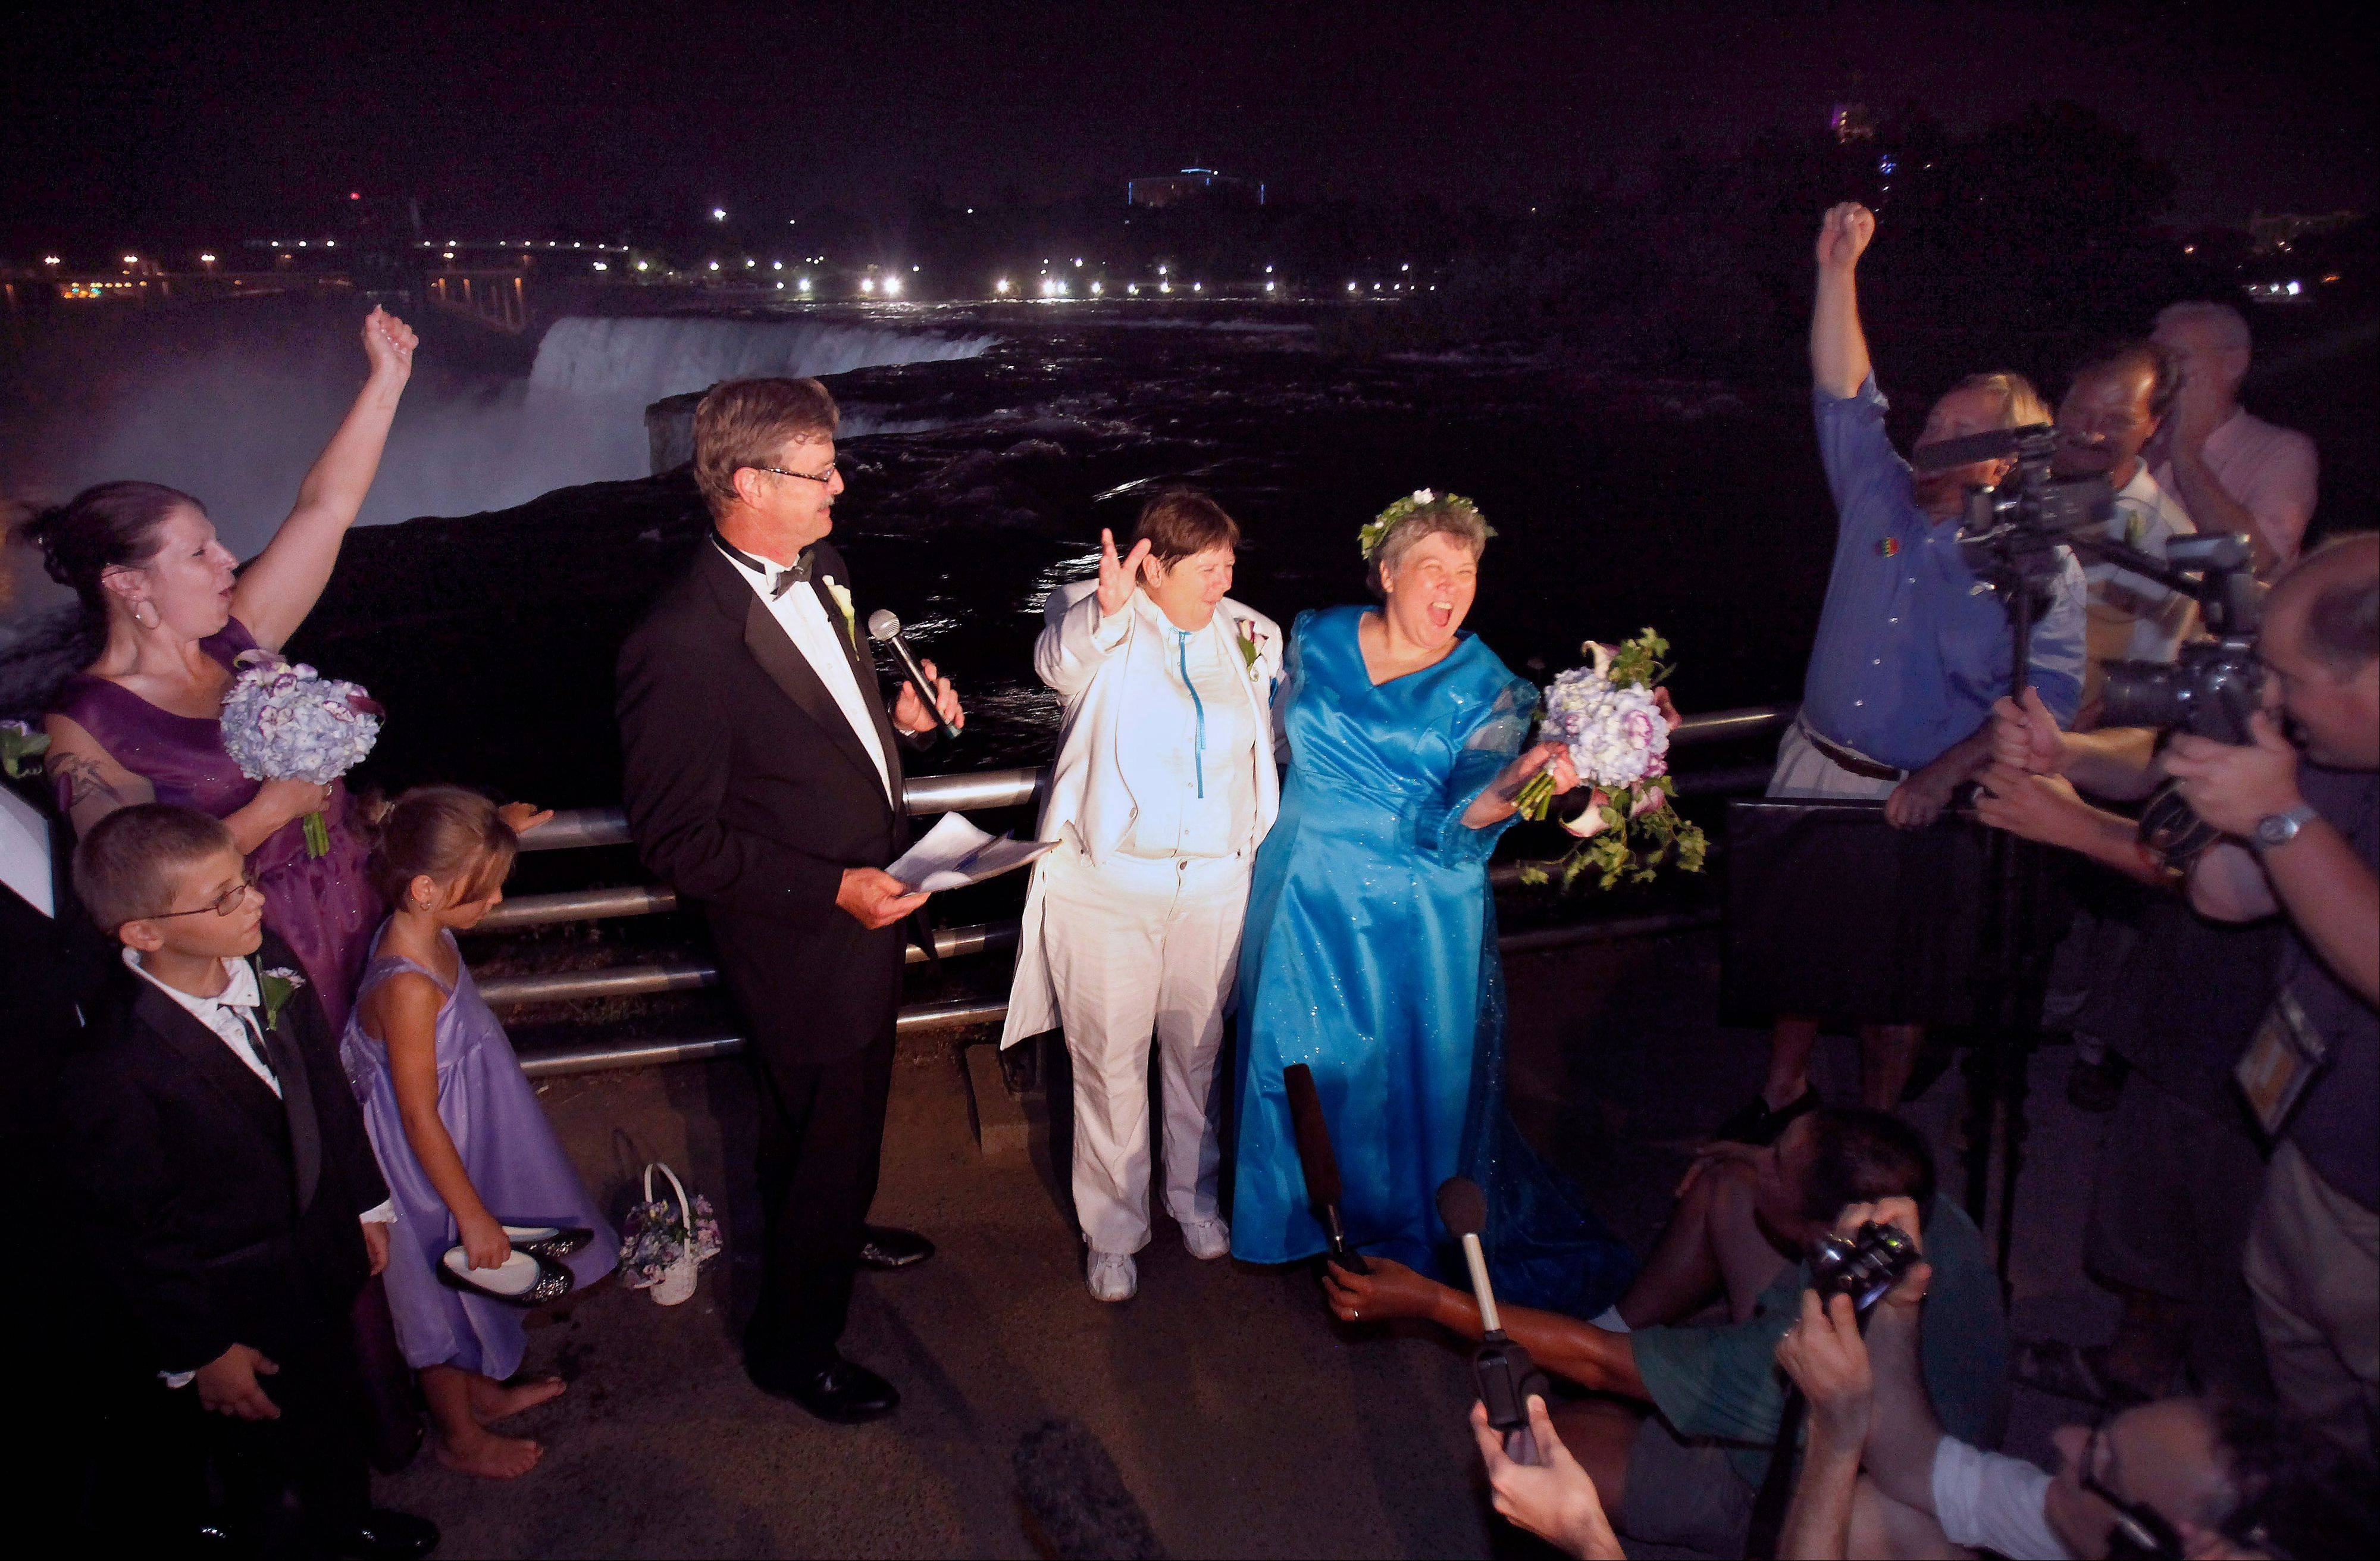 Kitty Lambert, right, and Cheryle Rudd celebrate their marriage in Niagara Falls, N.Y.